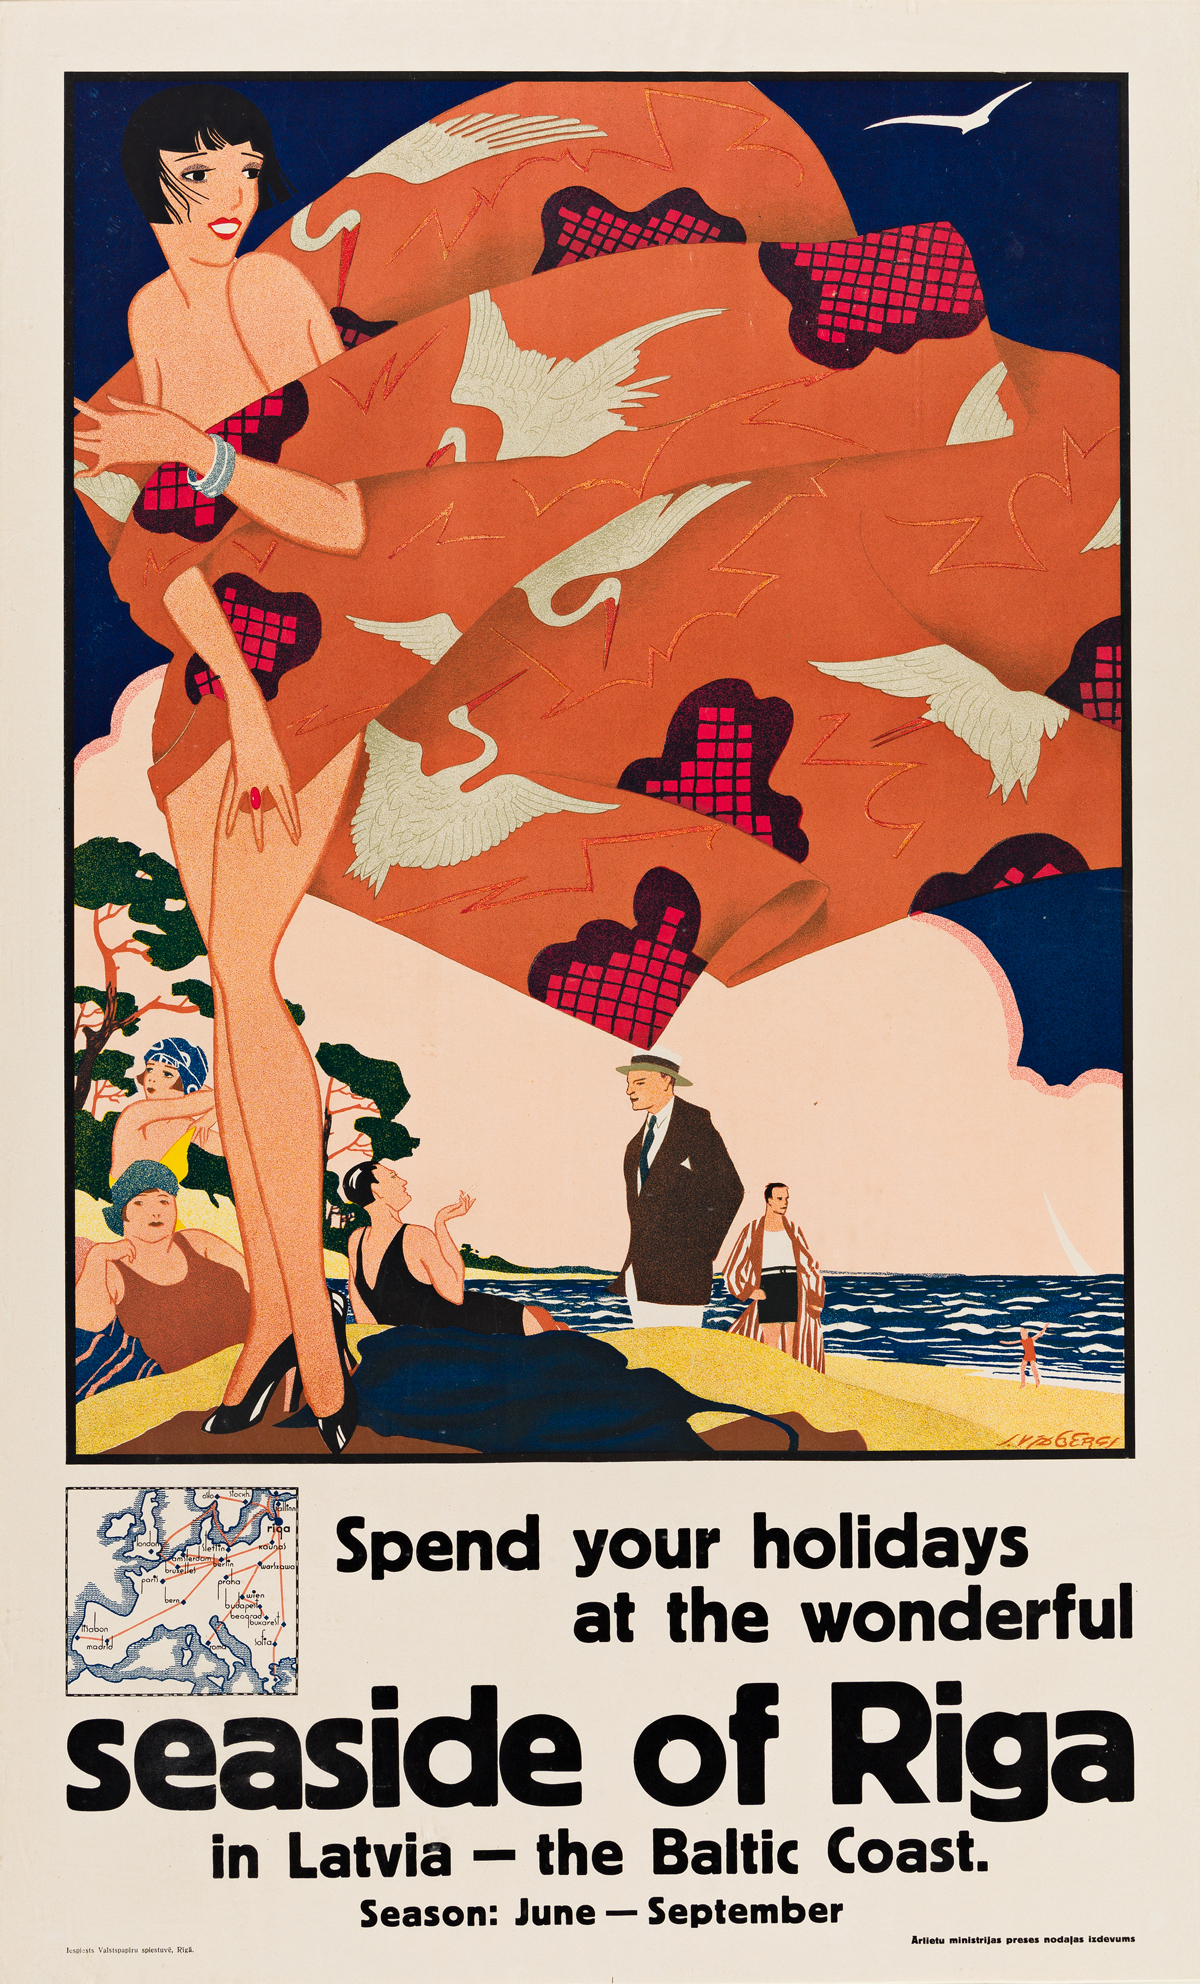 Sigismunds Vidbergs (1890-1970).  SPEND YOUR HOLIDAYS AT THE WONDERFUL SEASIDE OF RIGA. Circa 1925.